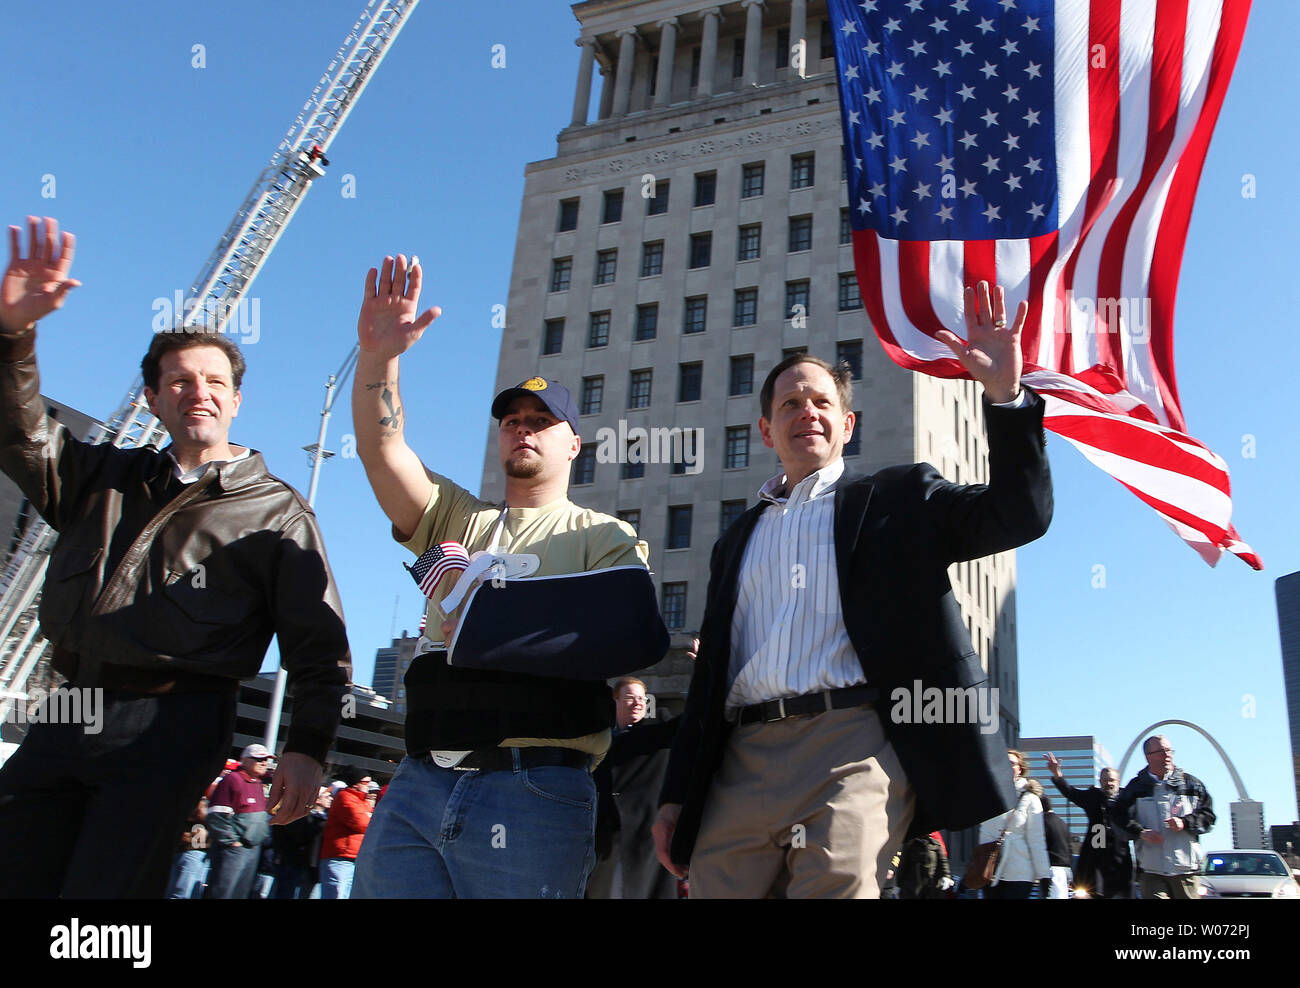 Army veteran Justin Petty (C) walks with St. Louis Mayor Francis Slay (R) and U.S. Rep. Russ Carnahan (D-St. Louis) during a war veterans parade in St. Louis on January 28, 2012. Thousands of people lined a parade route in downtown St. Louis for the nationÕs first parade to honor those who have served in Iraq and Afghanistan. UPI/Bill Greenblatt - Stock Image